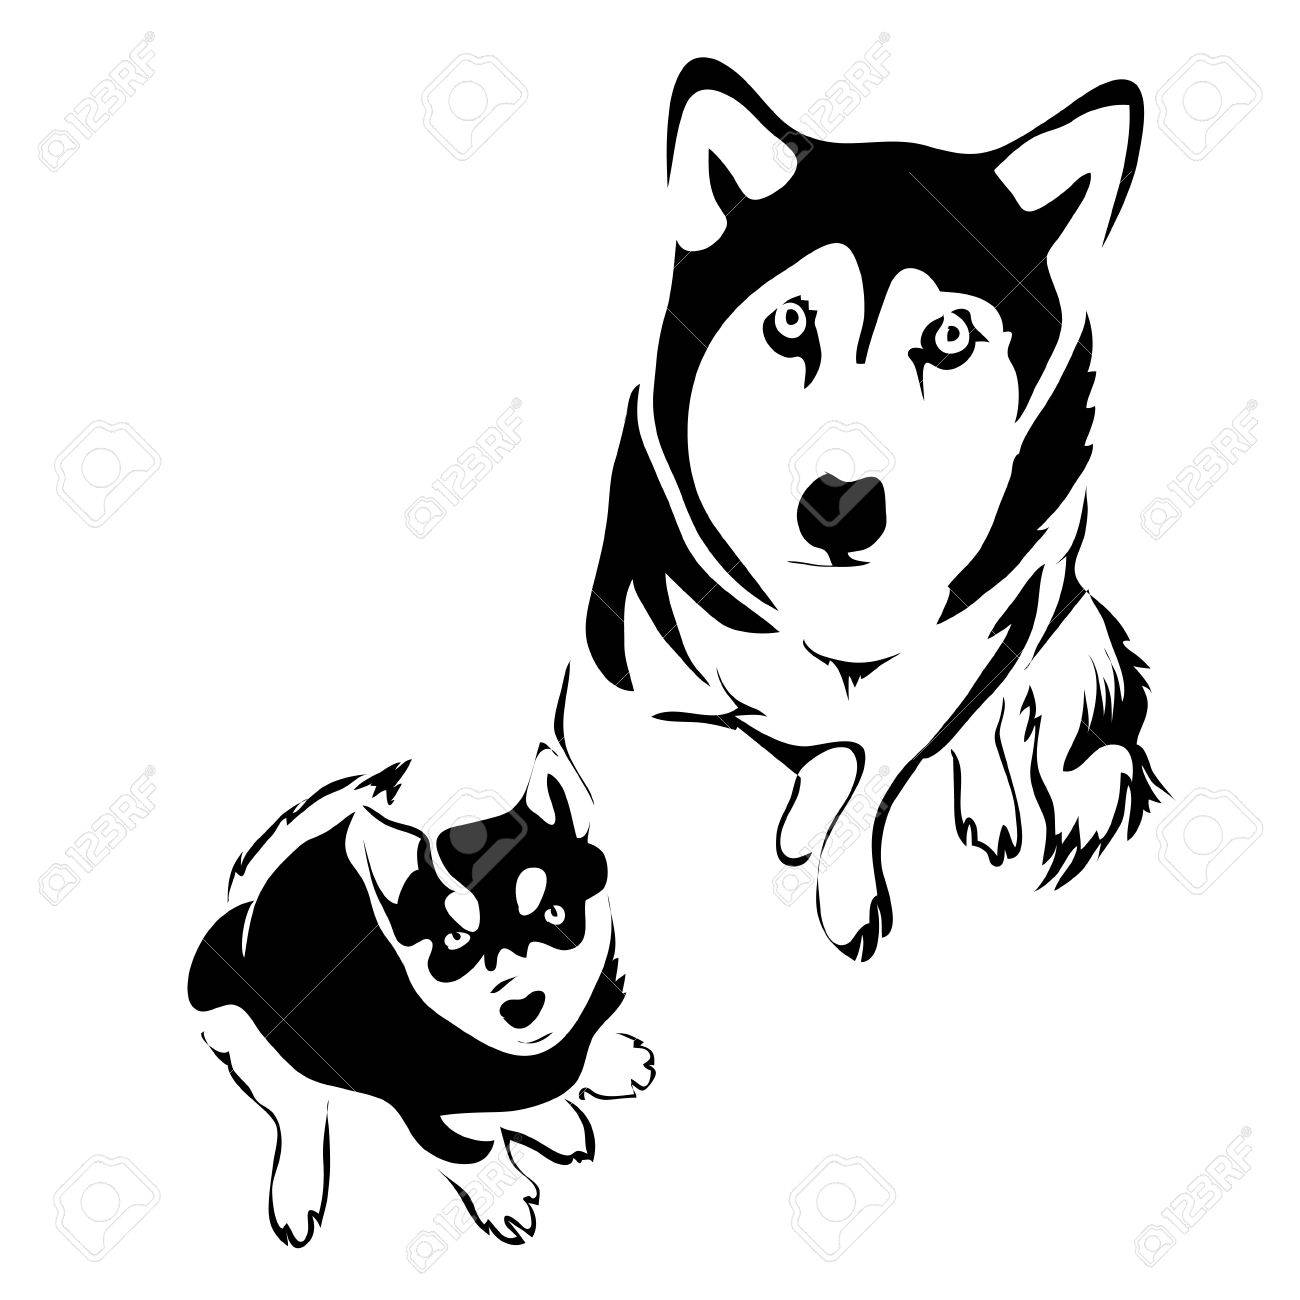 Outline Dog And Puppy Husky Top View Vector Template Royalty Free